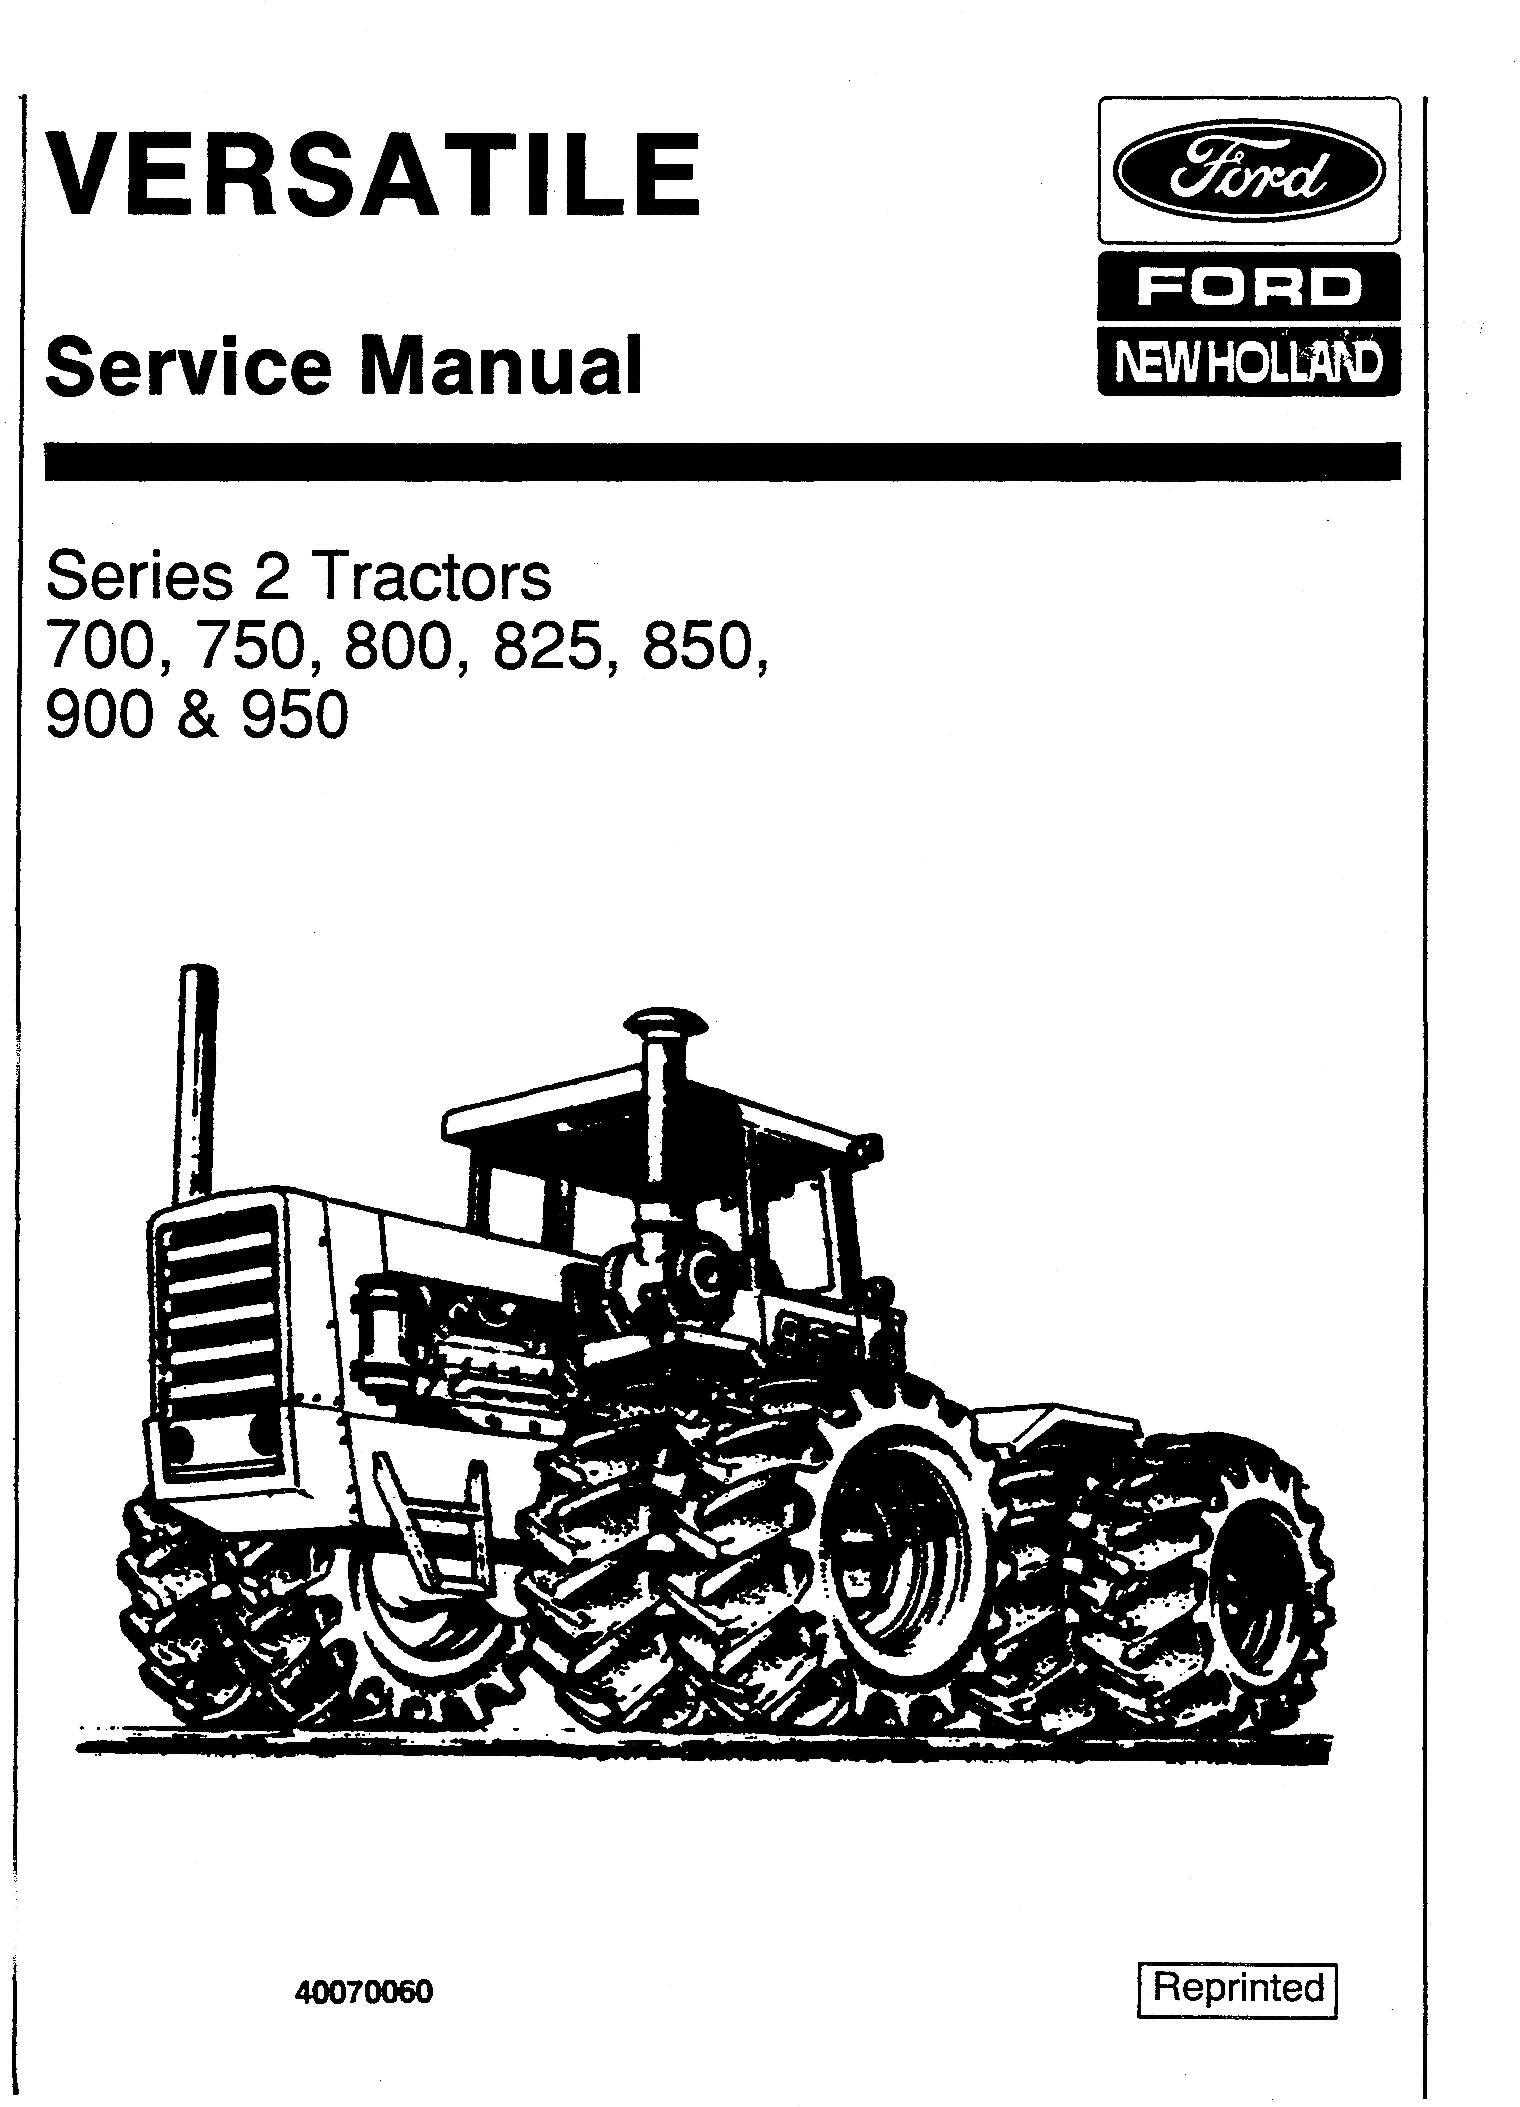 Ford Versatile 700 750 800 825 850 900 950 4wd